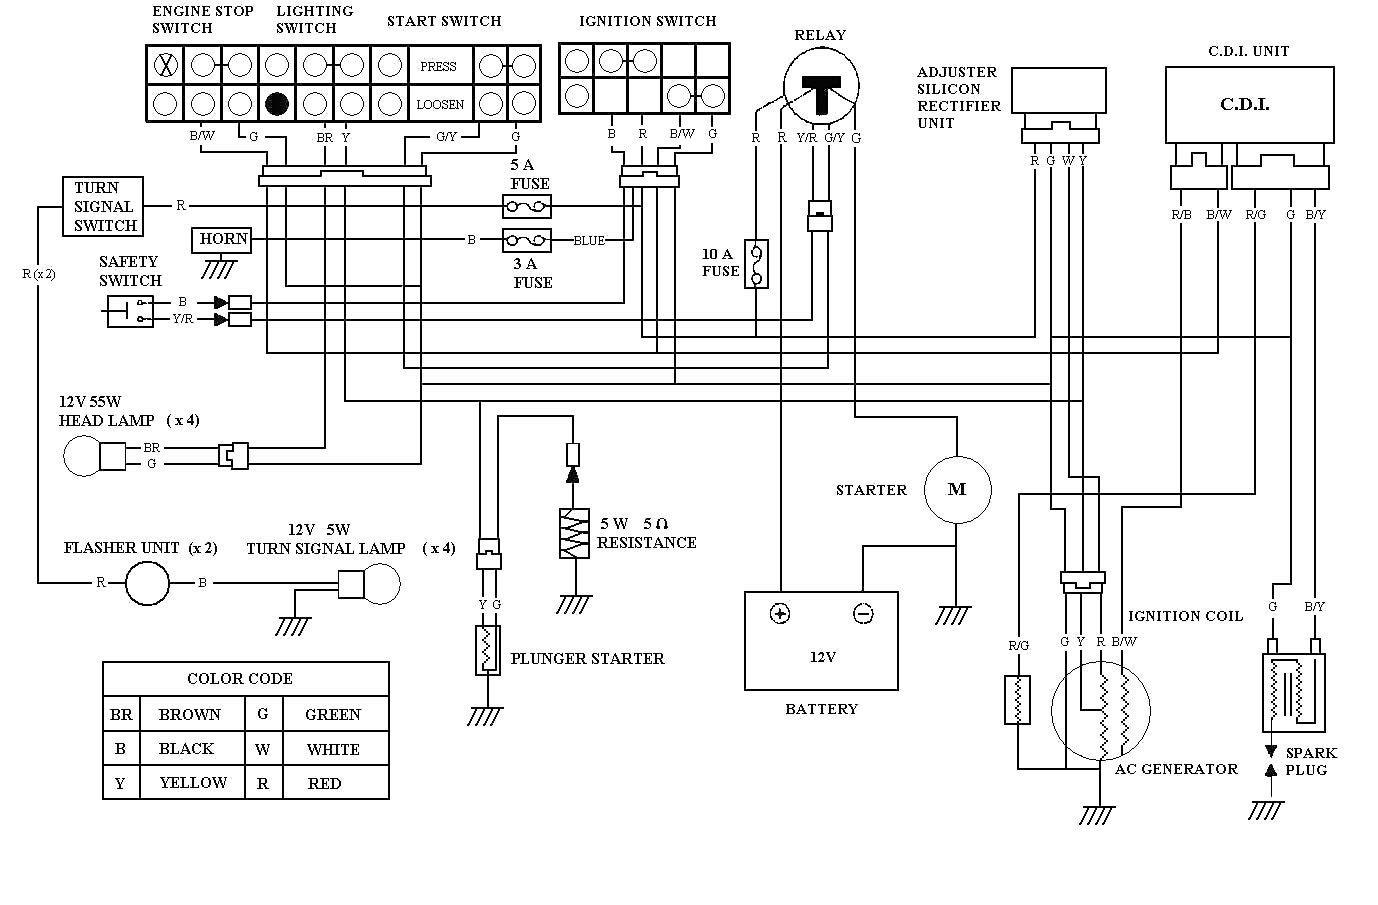 mad dog solenoid wiring diagram circuit connection diagram u2022 rh wiringdiagraminc today Residential Electrical Wiring Diagrams 3-Way Switch Wiring Diagram